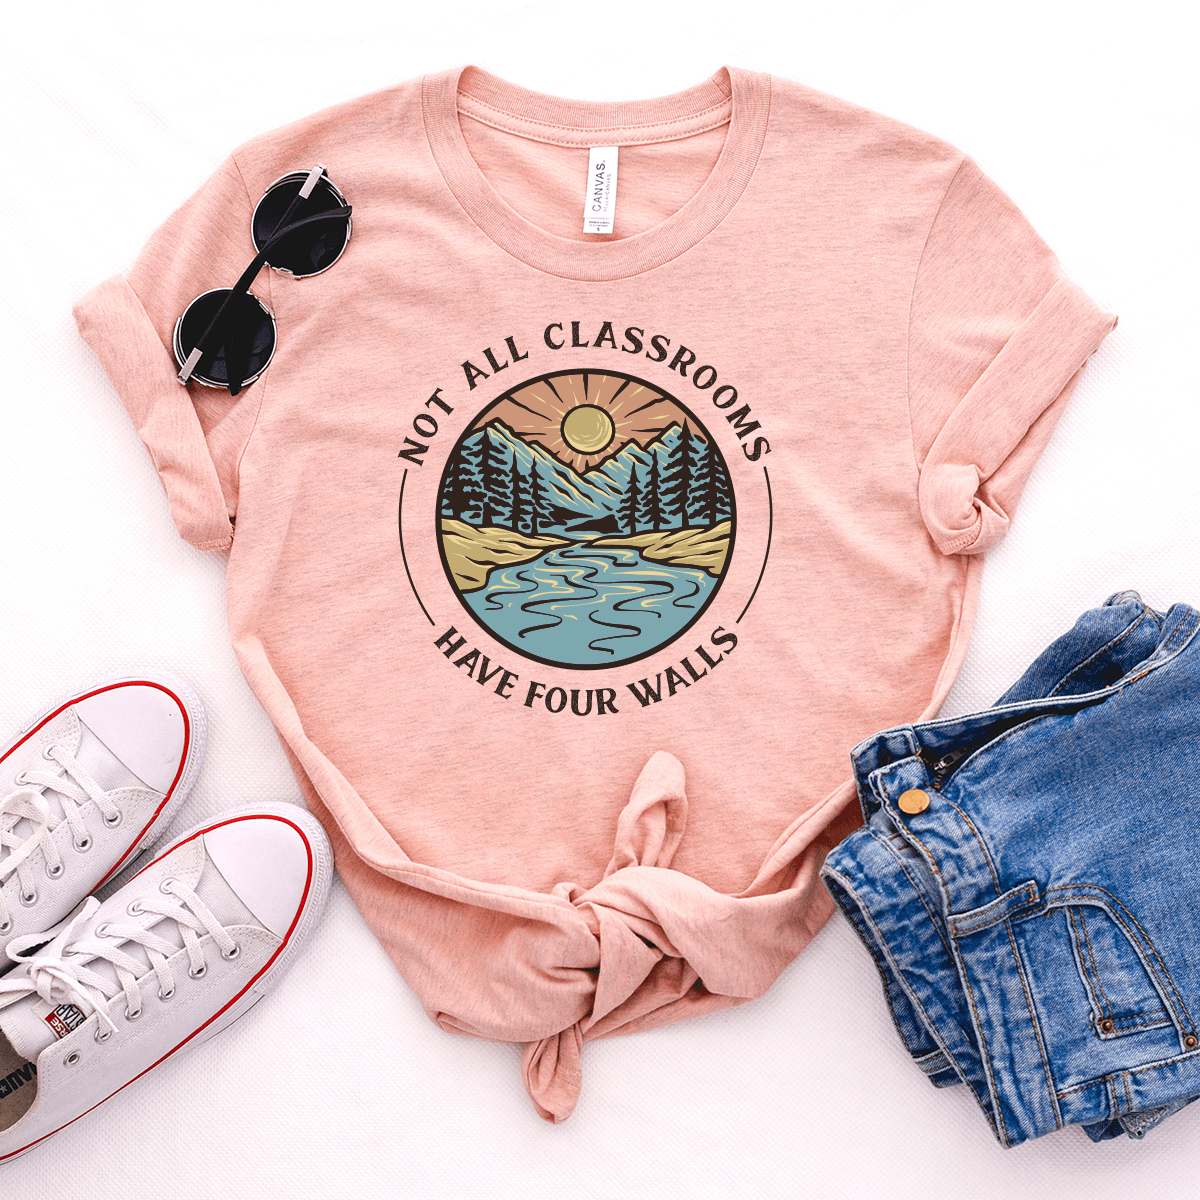 Not All Classrooms Have Four Walls - Bella+Canvas Tee